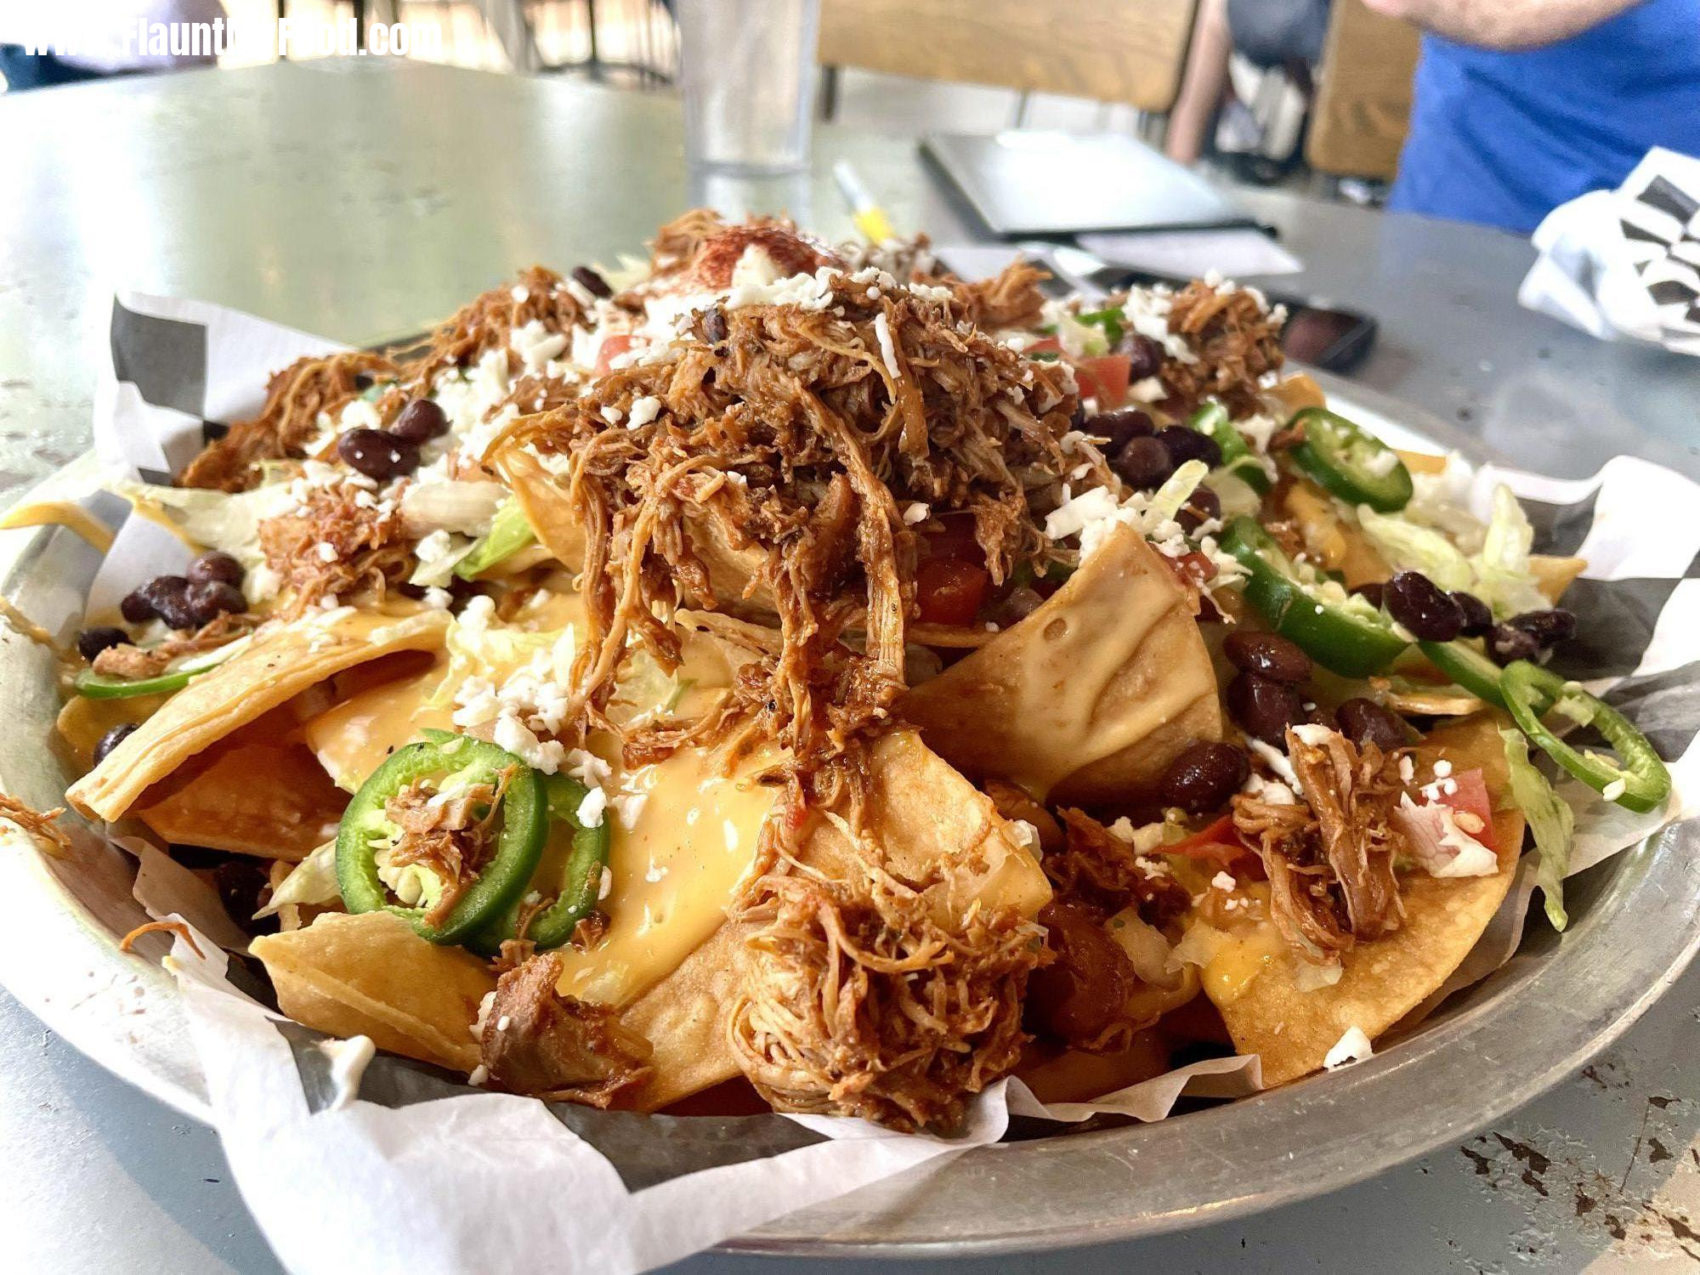 Rogers Roundhouse Fort Worth Bar and Grill NachosRogers Roundhouse Fort Worth Bar and Grill Nachos. Rogers Roundhouse is located just of University and very close to TCU campus. It has a nice outdoor seating and patio area that is great for get togetherness.